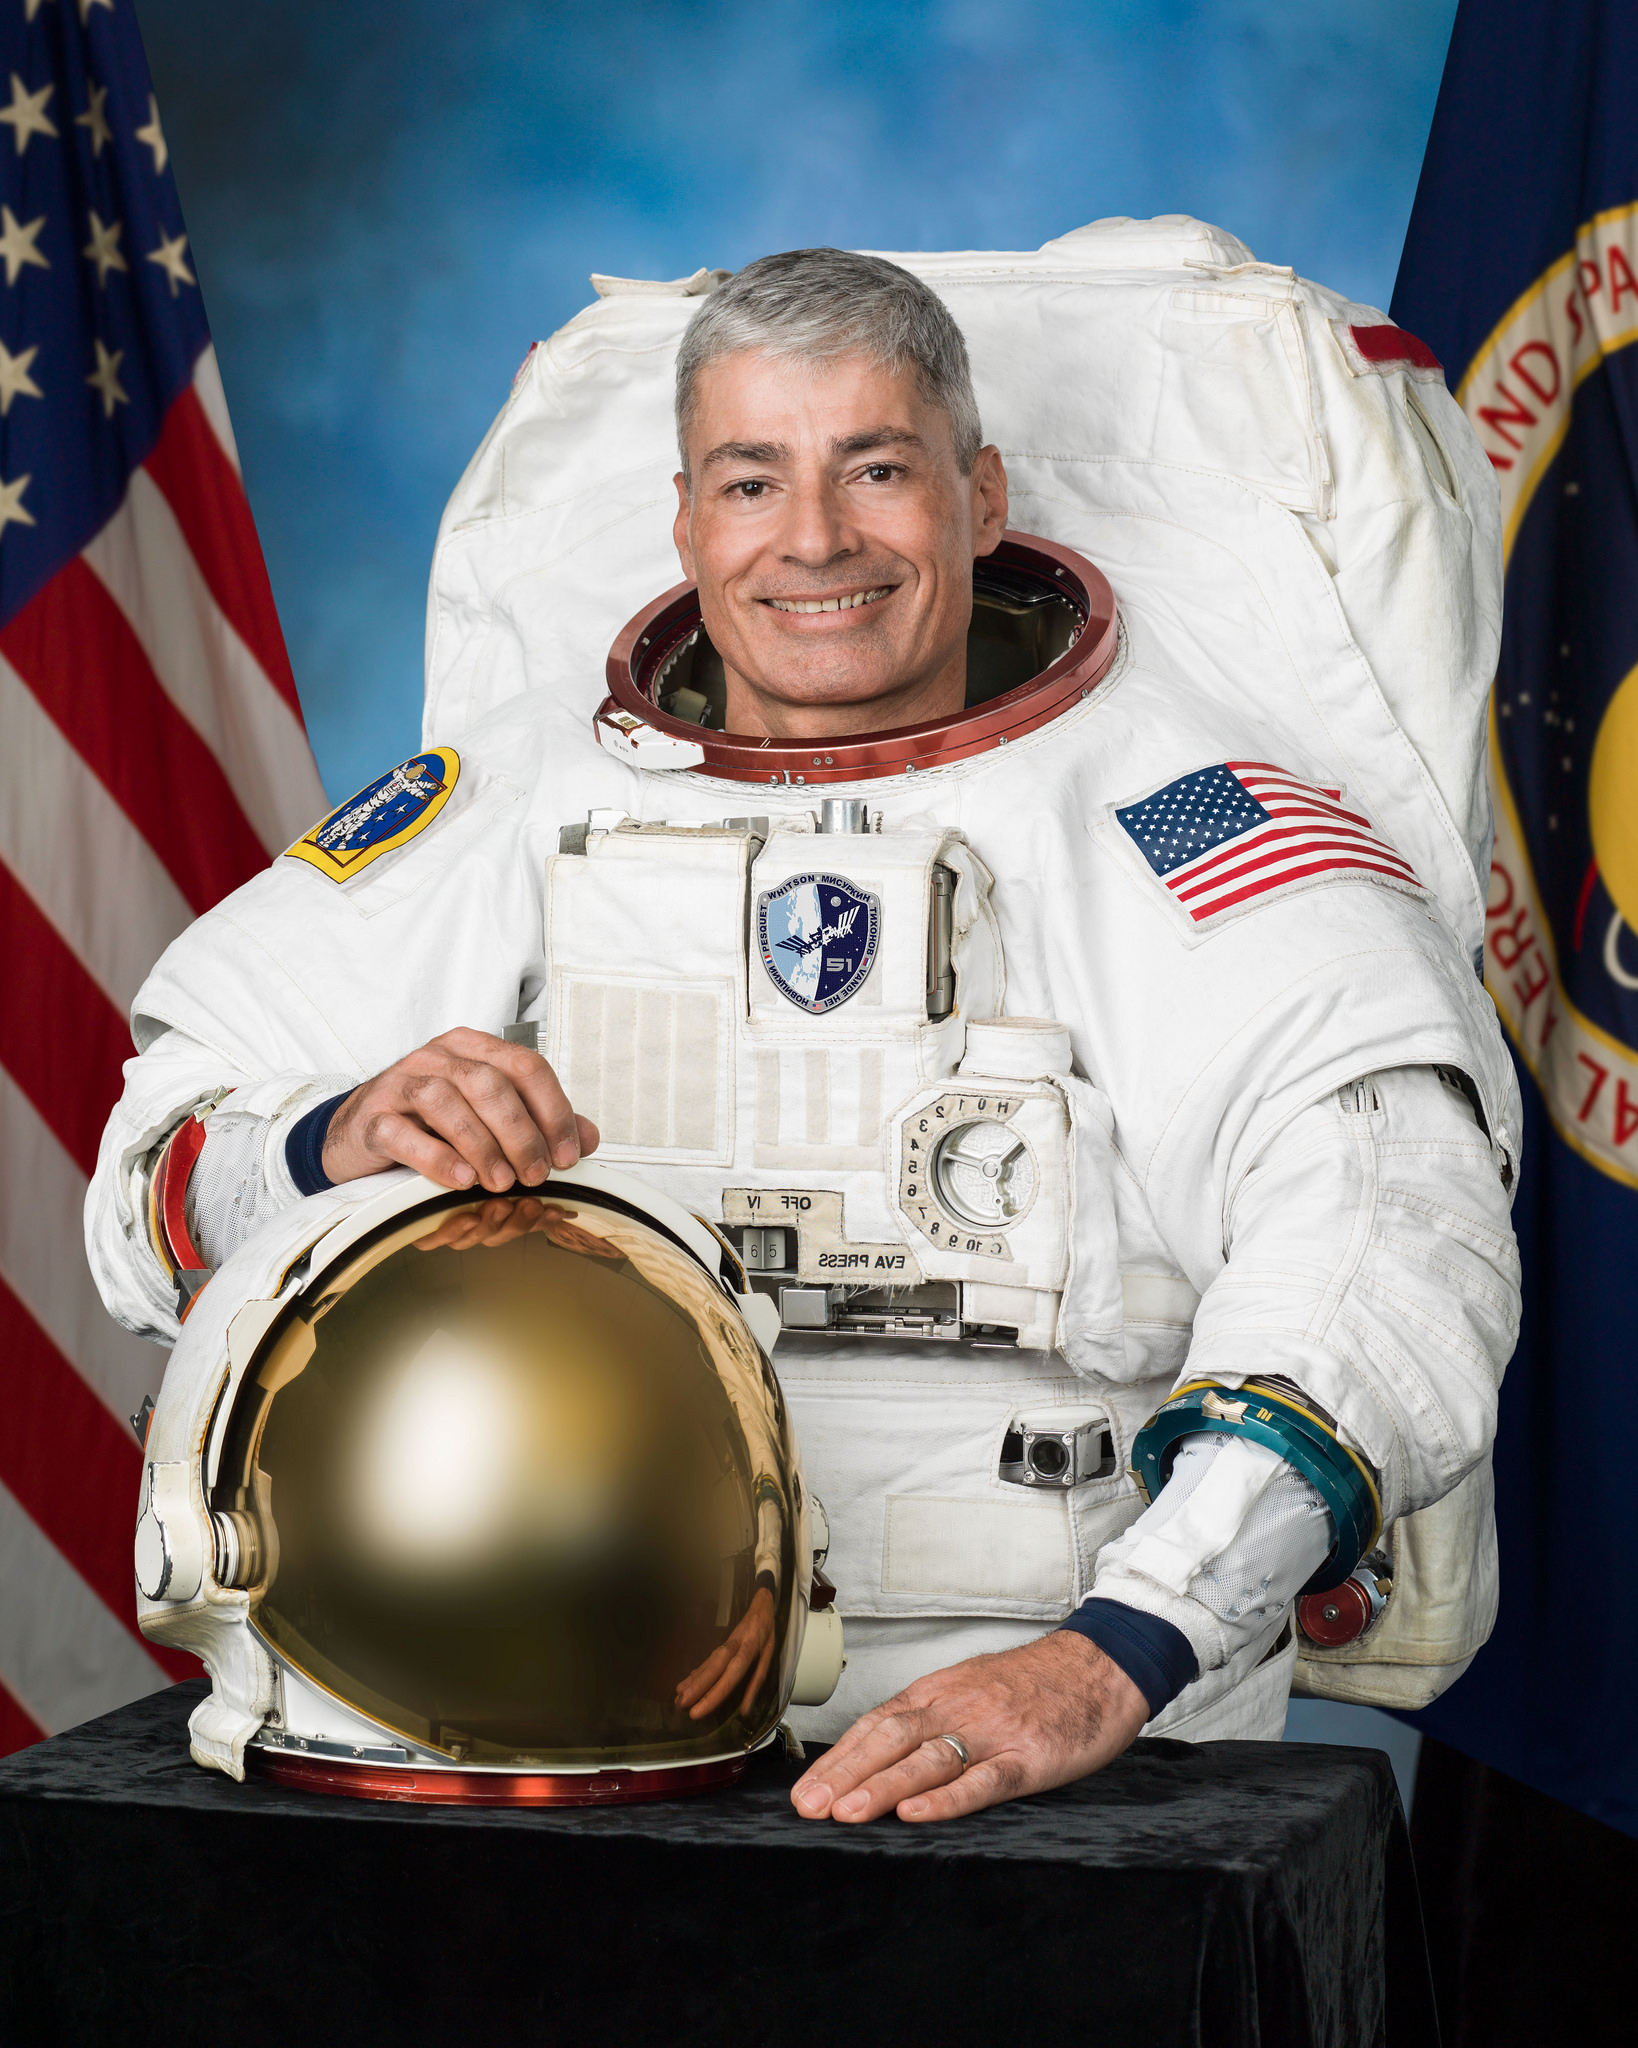 astronaut who was in space for a year - photo #43